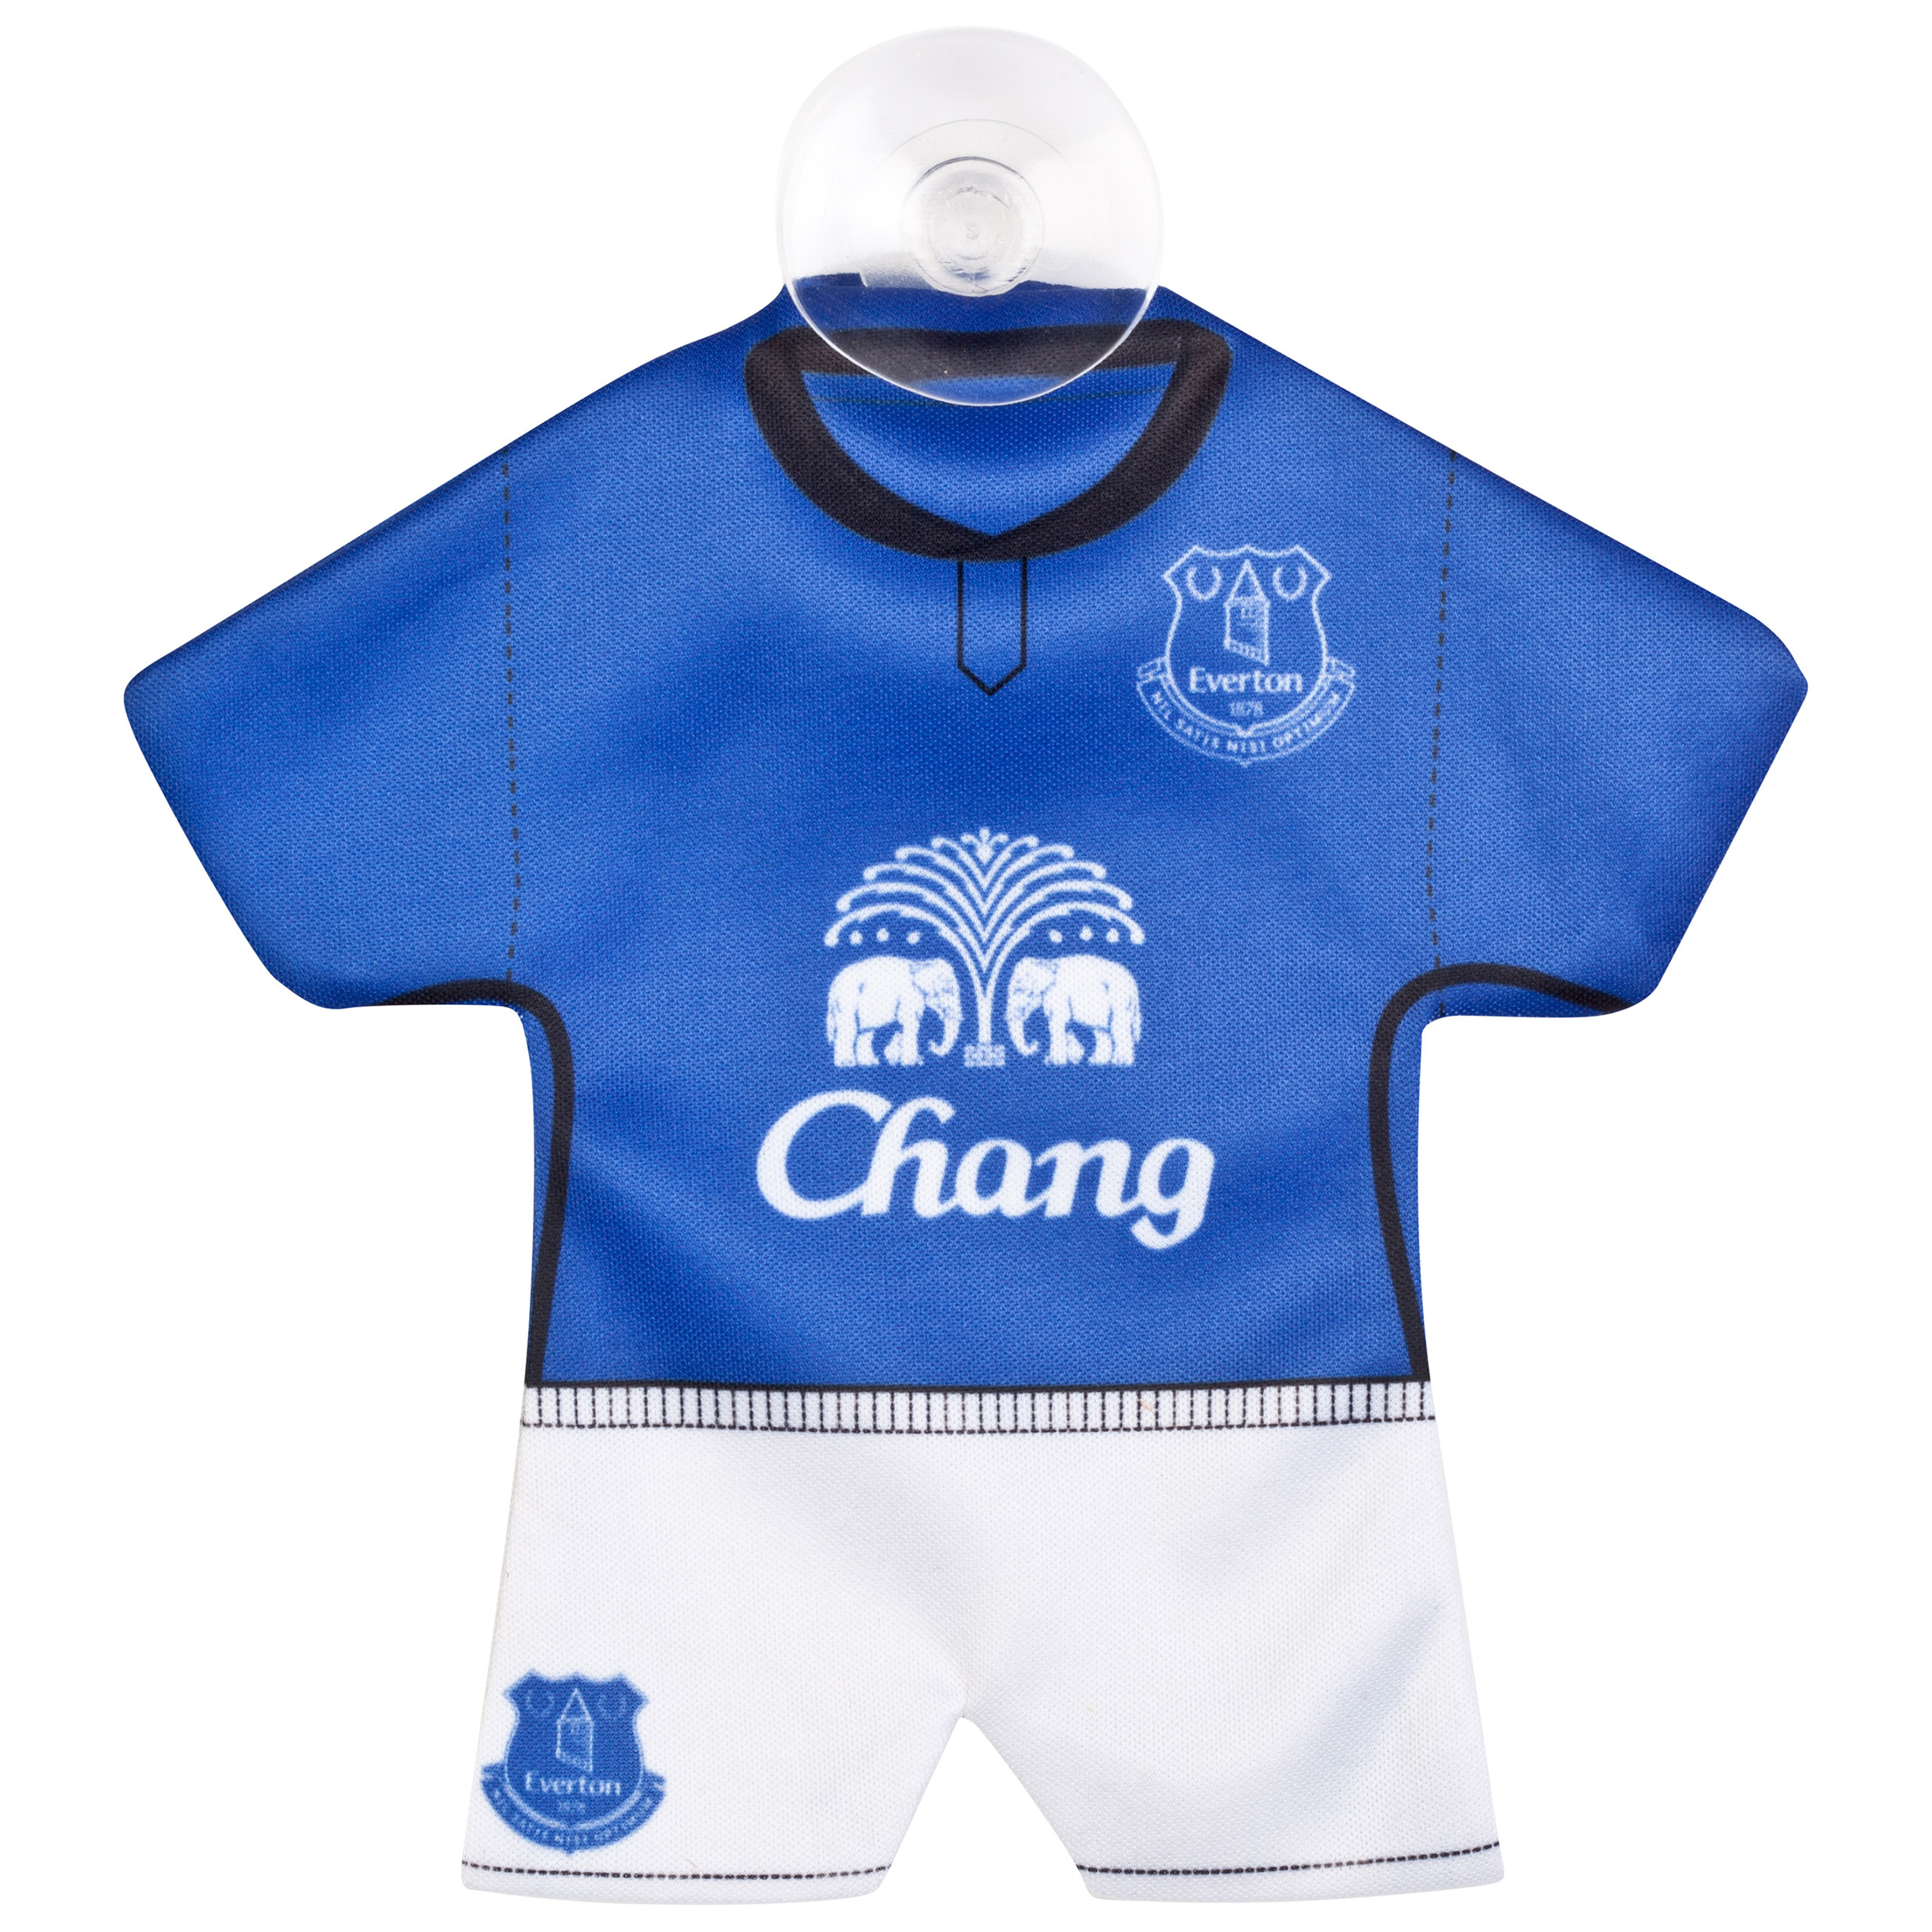 Everton Car Kit Hanger